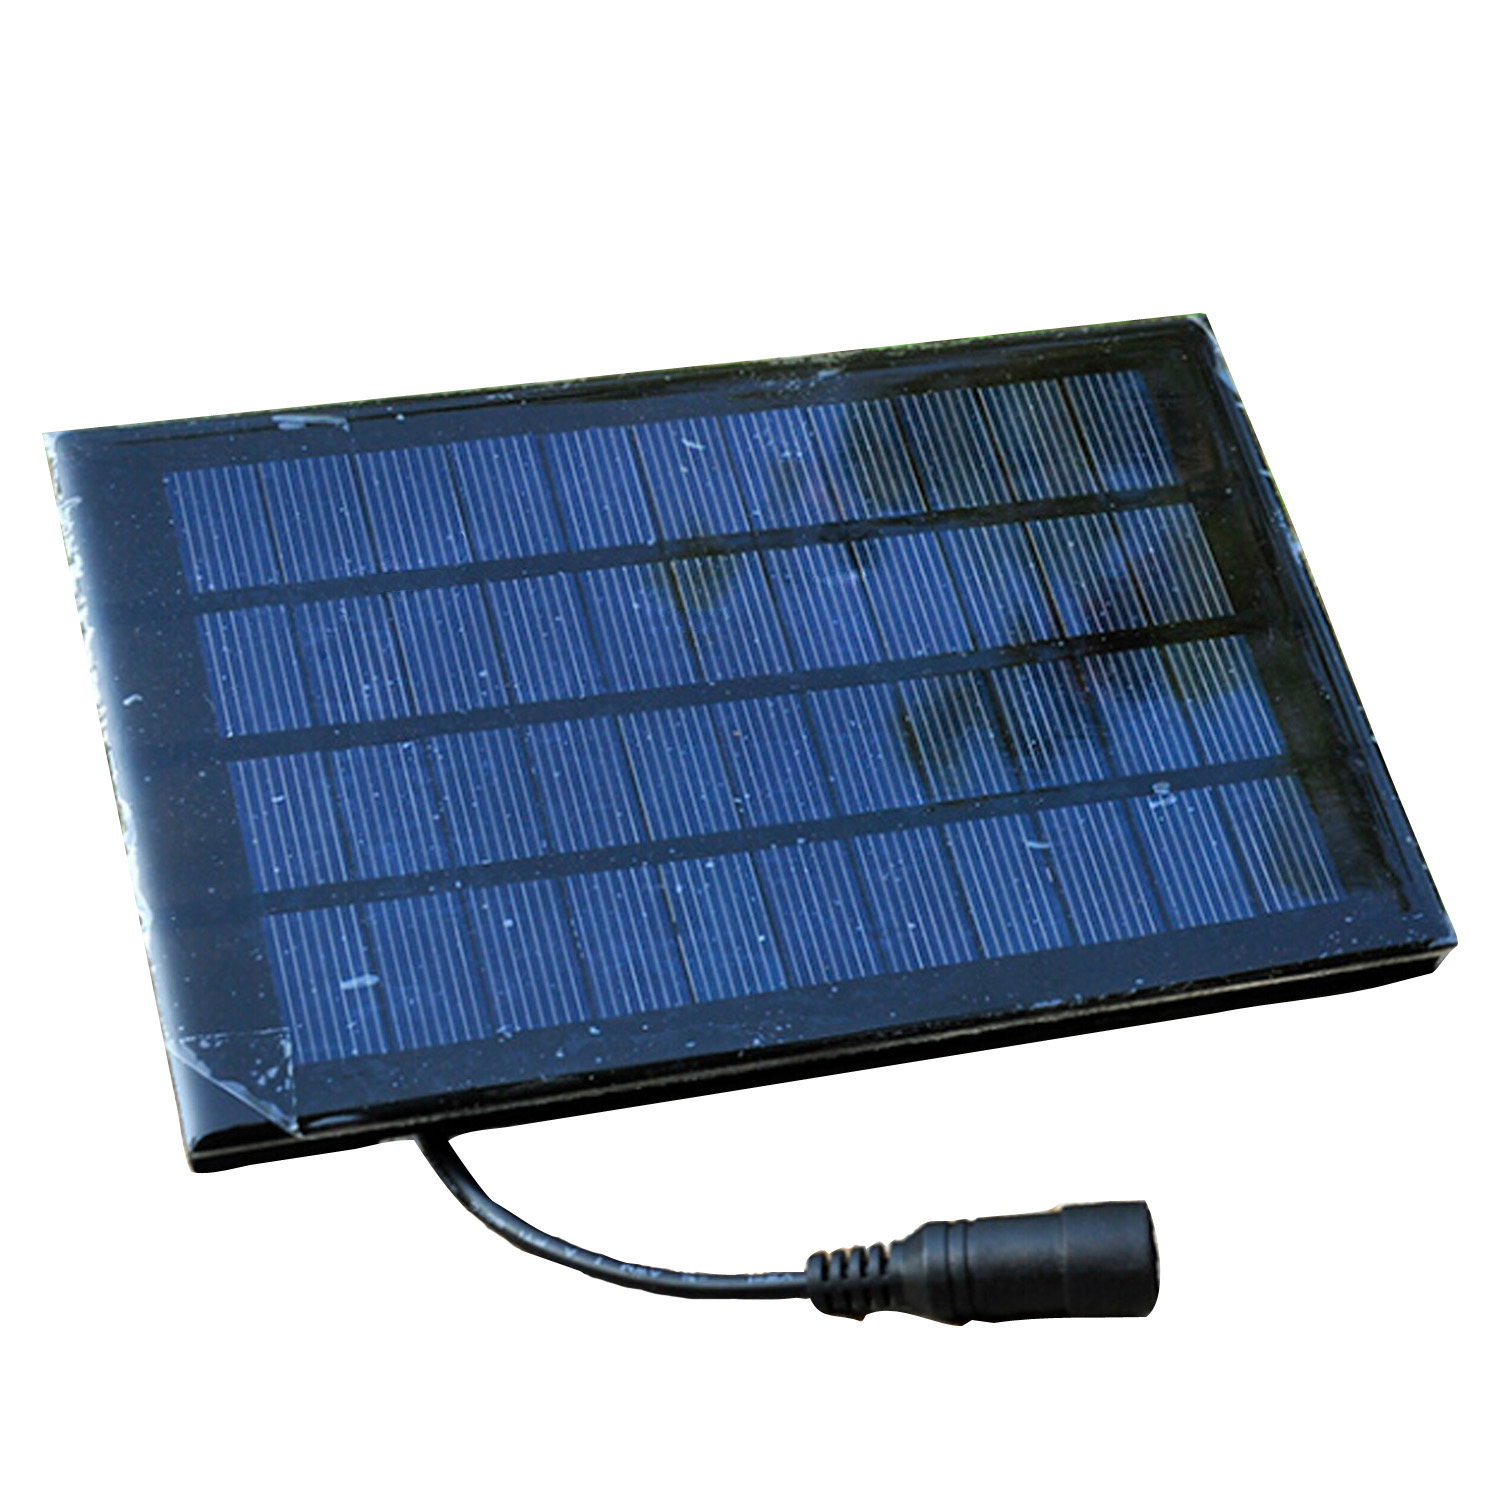 Most popular solar panel for outdoors electronics with enough power wireless offering